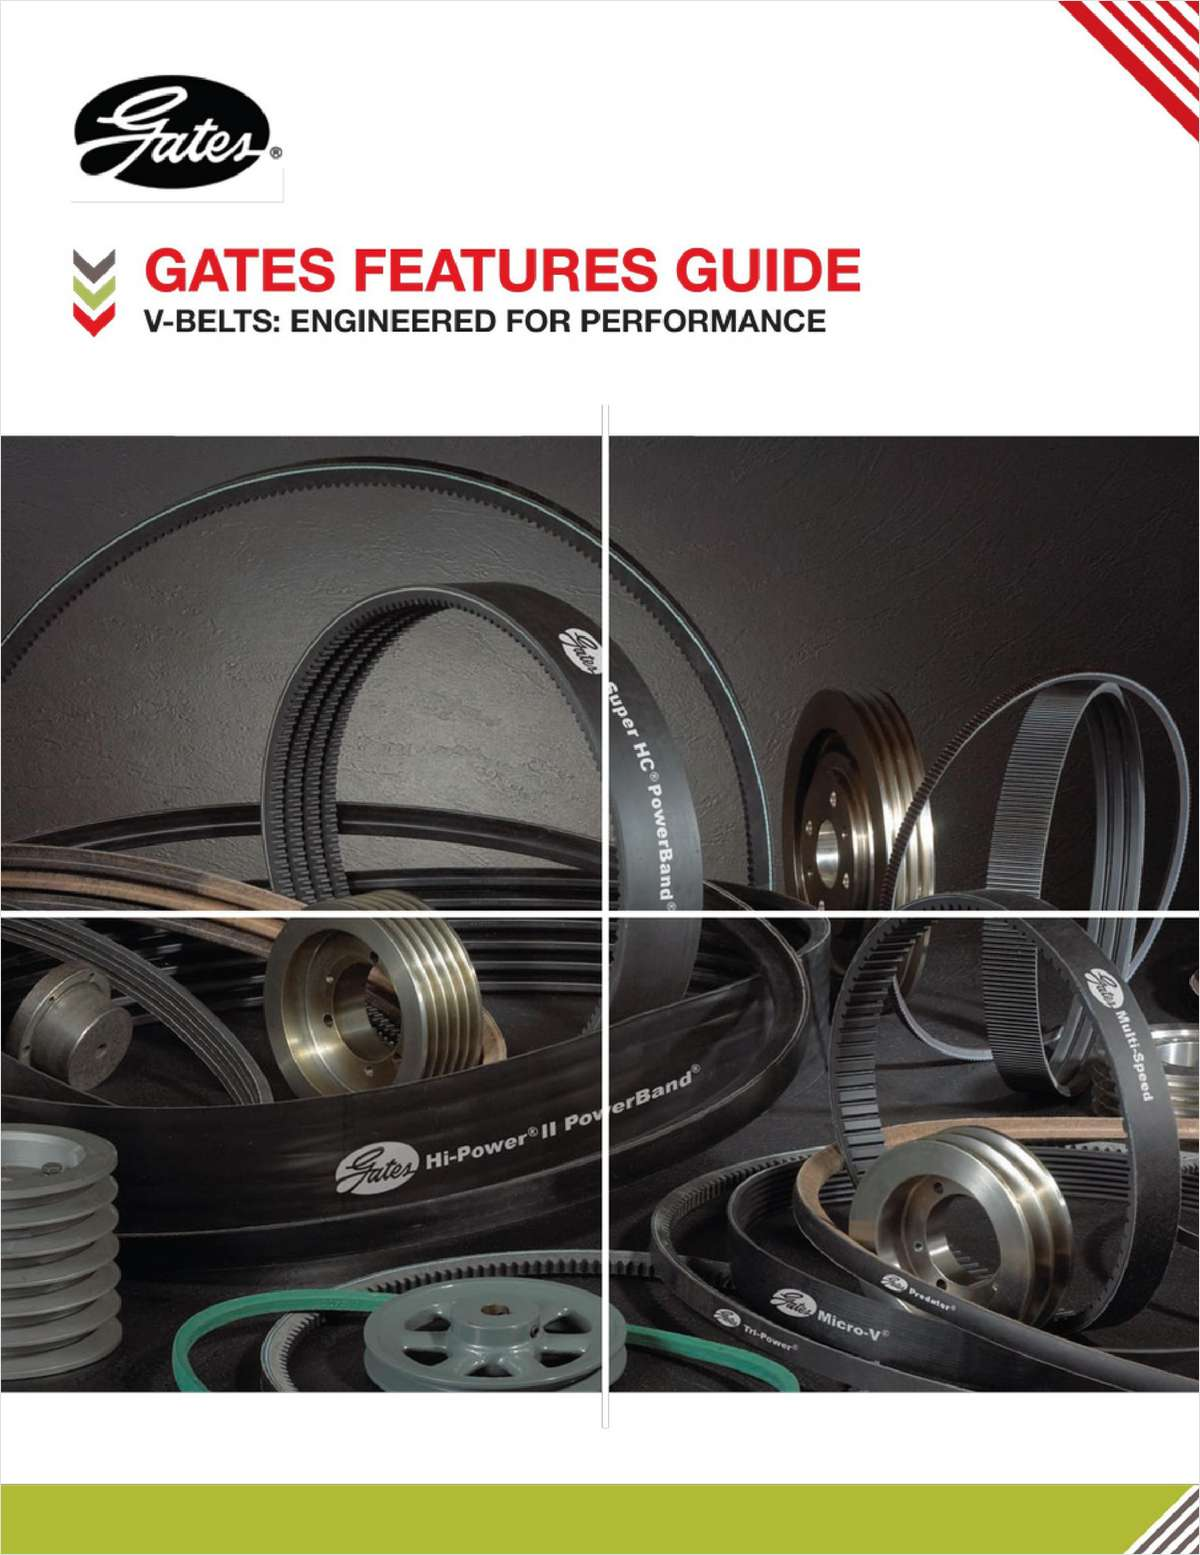 Gates V-Belts: Engineered for Performance